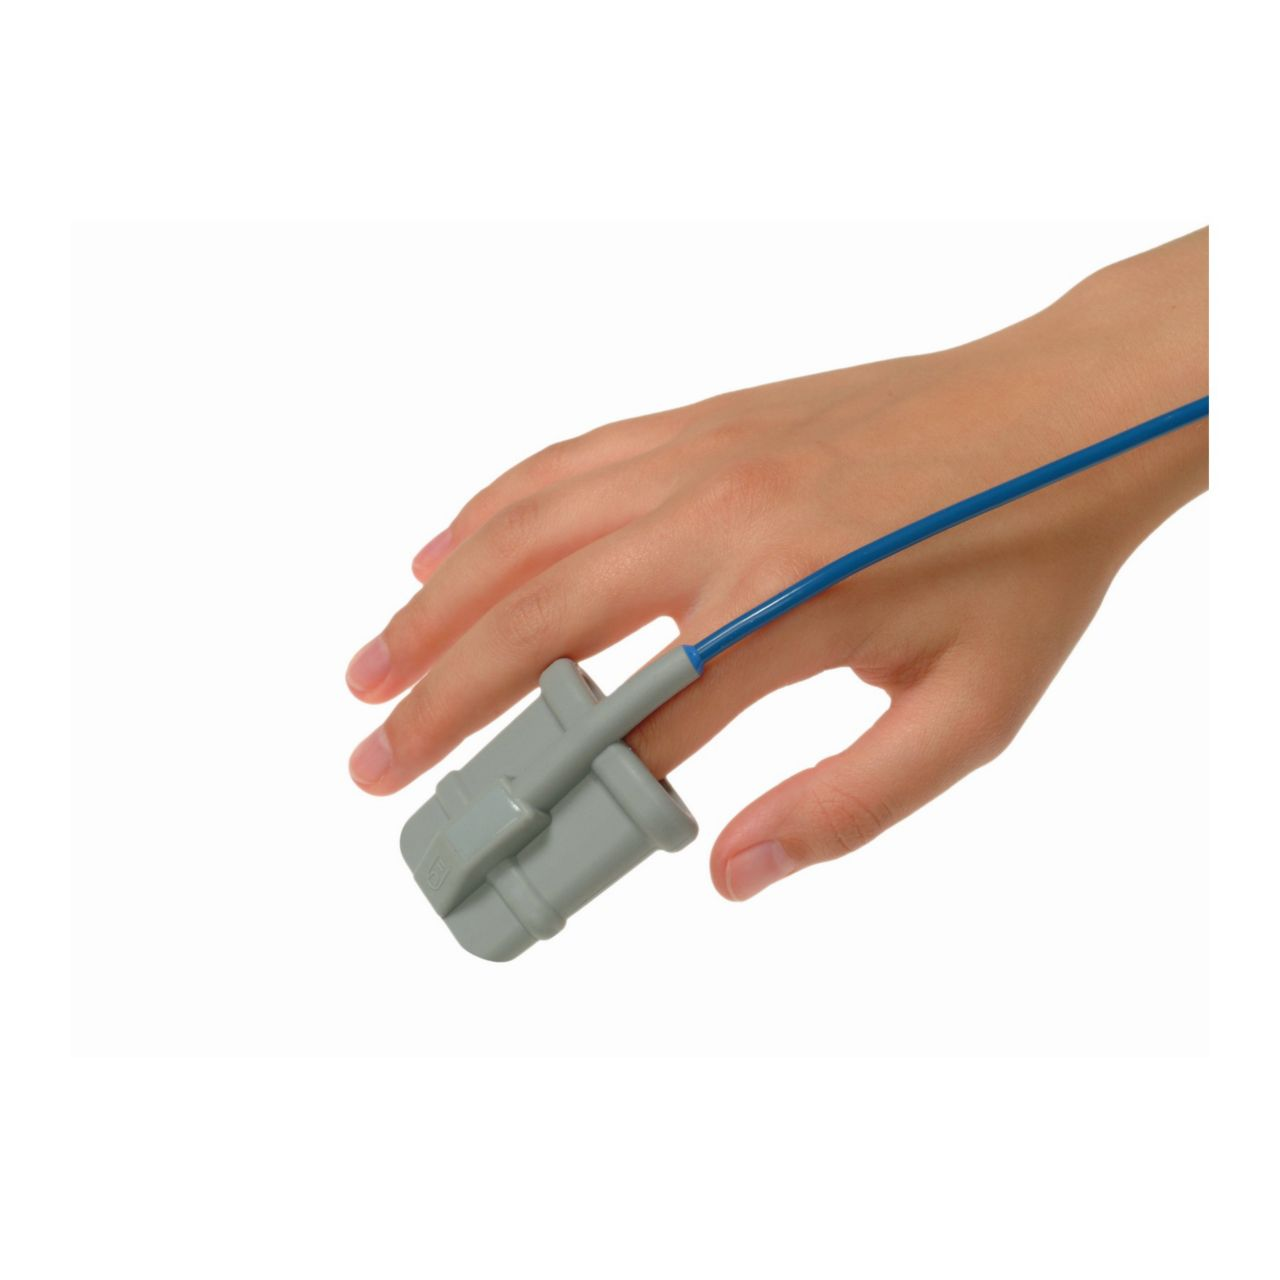 SoftTip, SoftTip plus - small, on patient finger